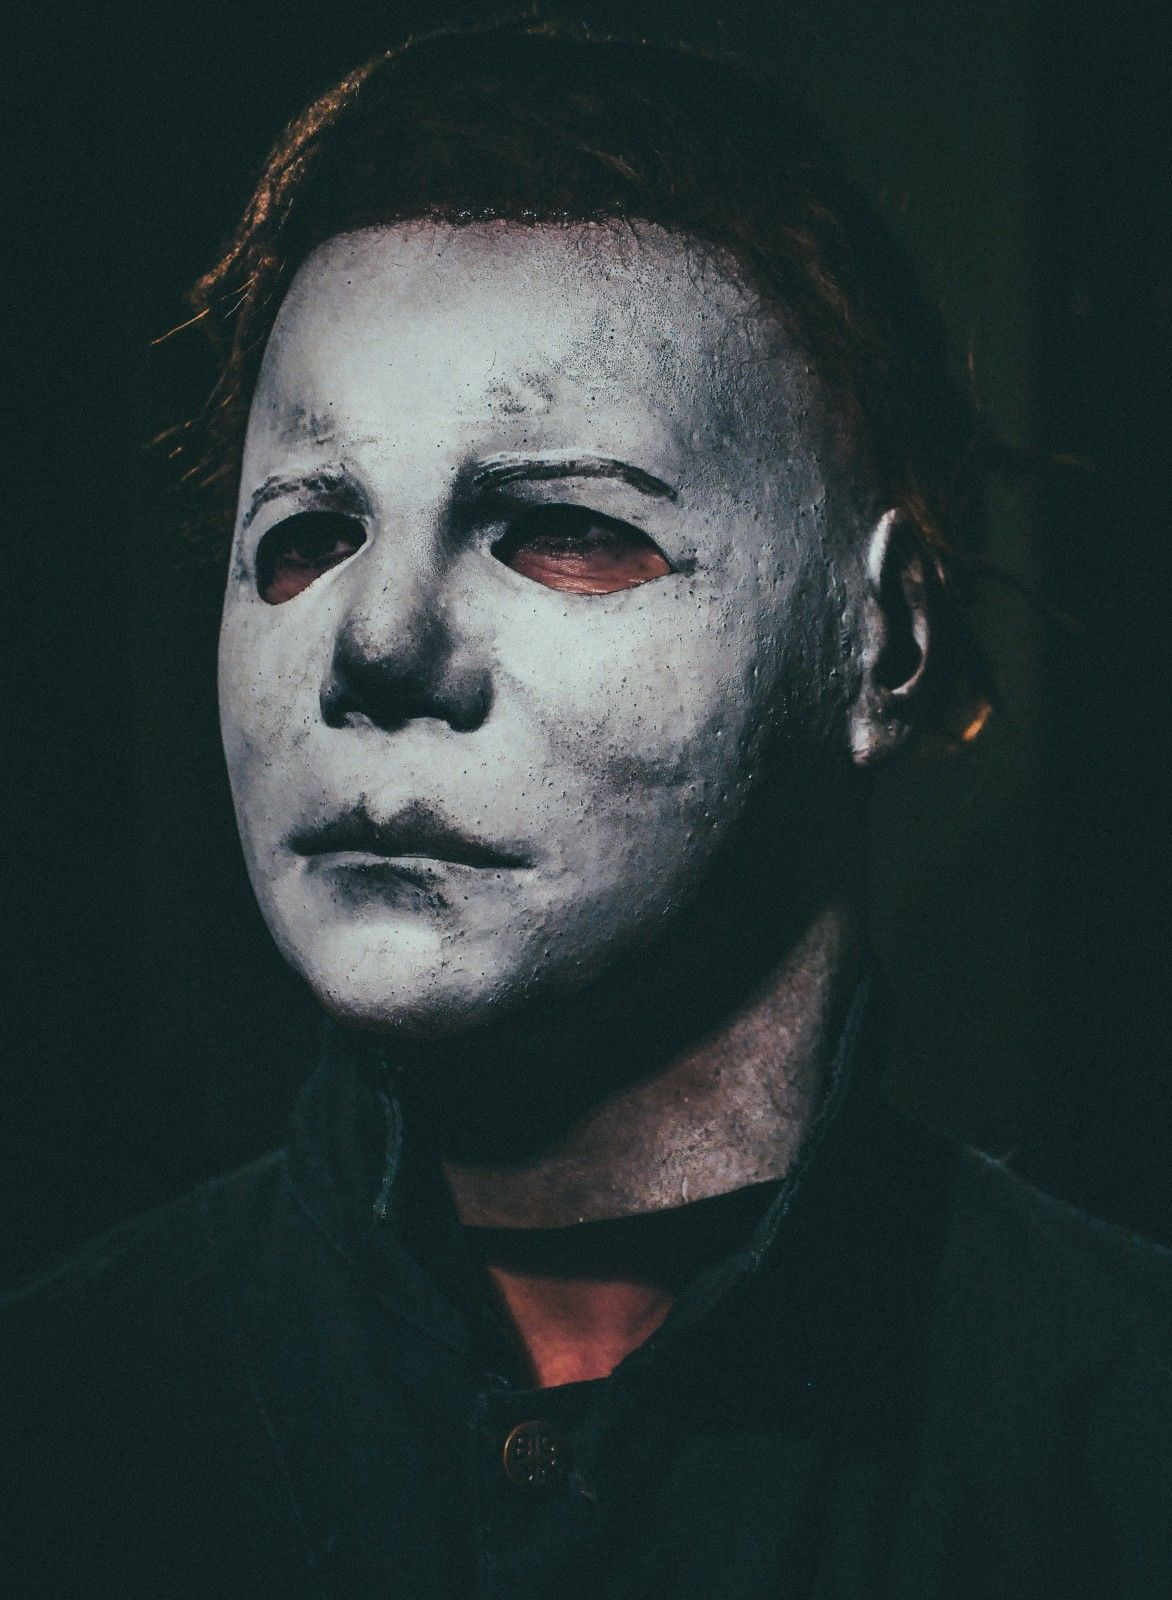 Details about NAG/AHG 98 PROTO MICHAEL MYERS MASK made by